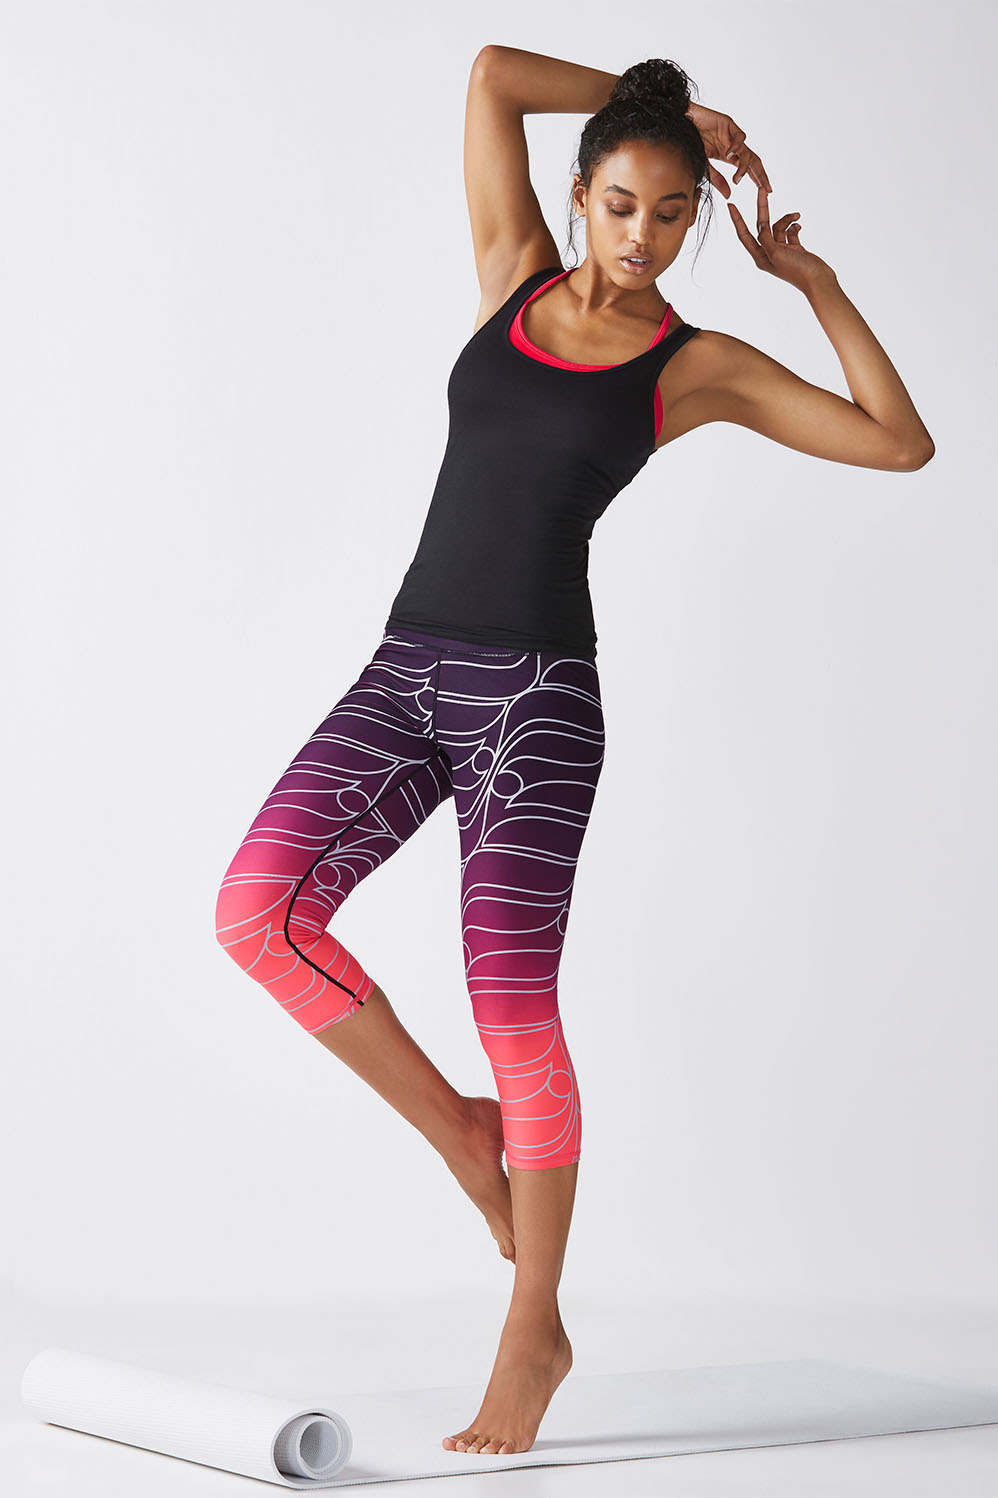 Rhea Outfit - Get great athletic wear at Fabletics